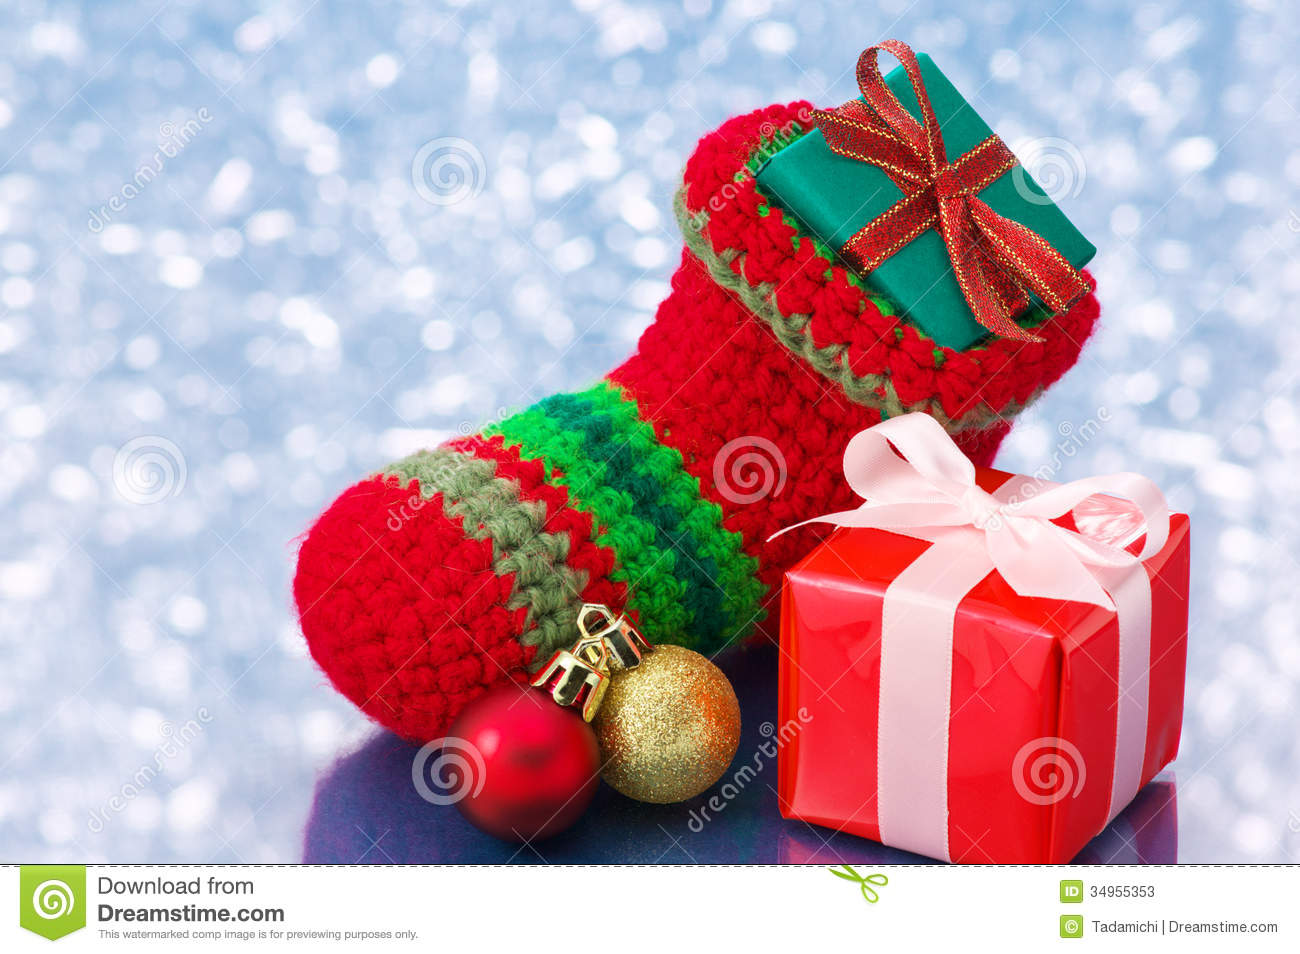 download small christmas stocking and presents on white sparkle backgroun stock image image of glitter